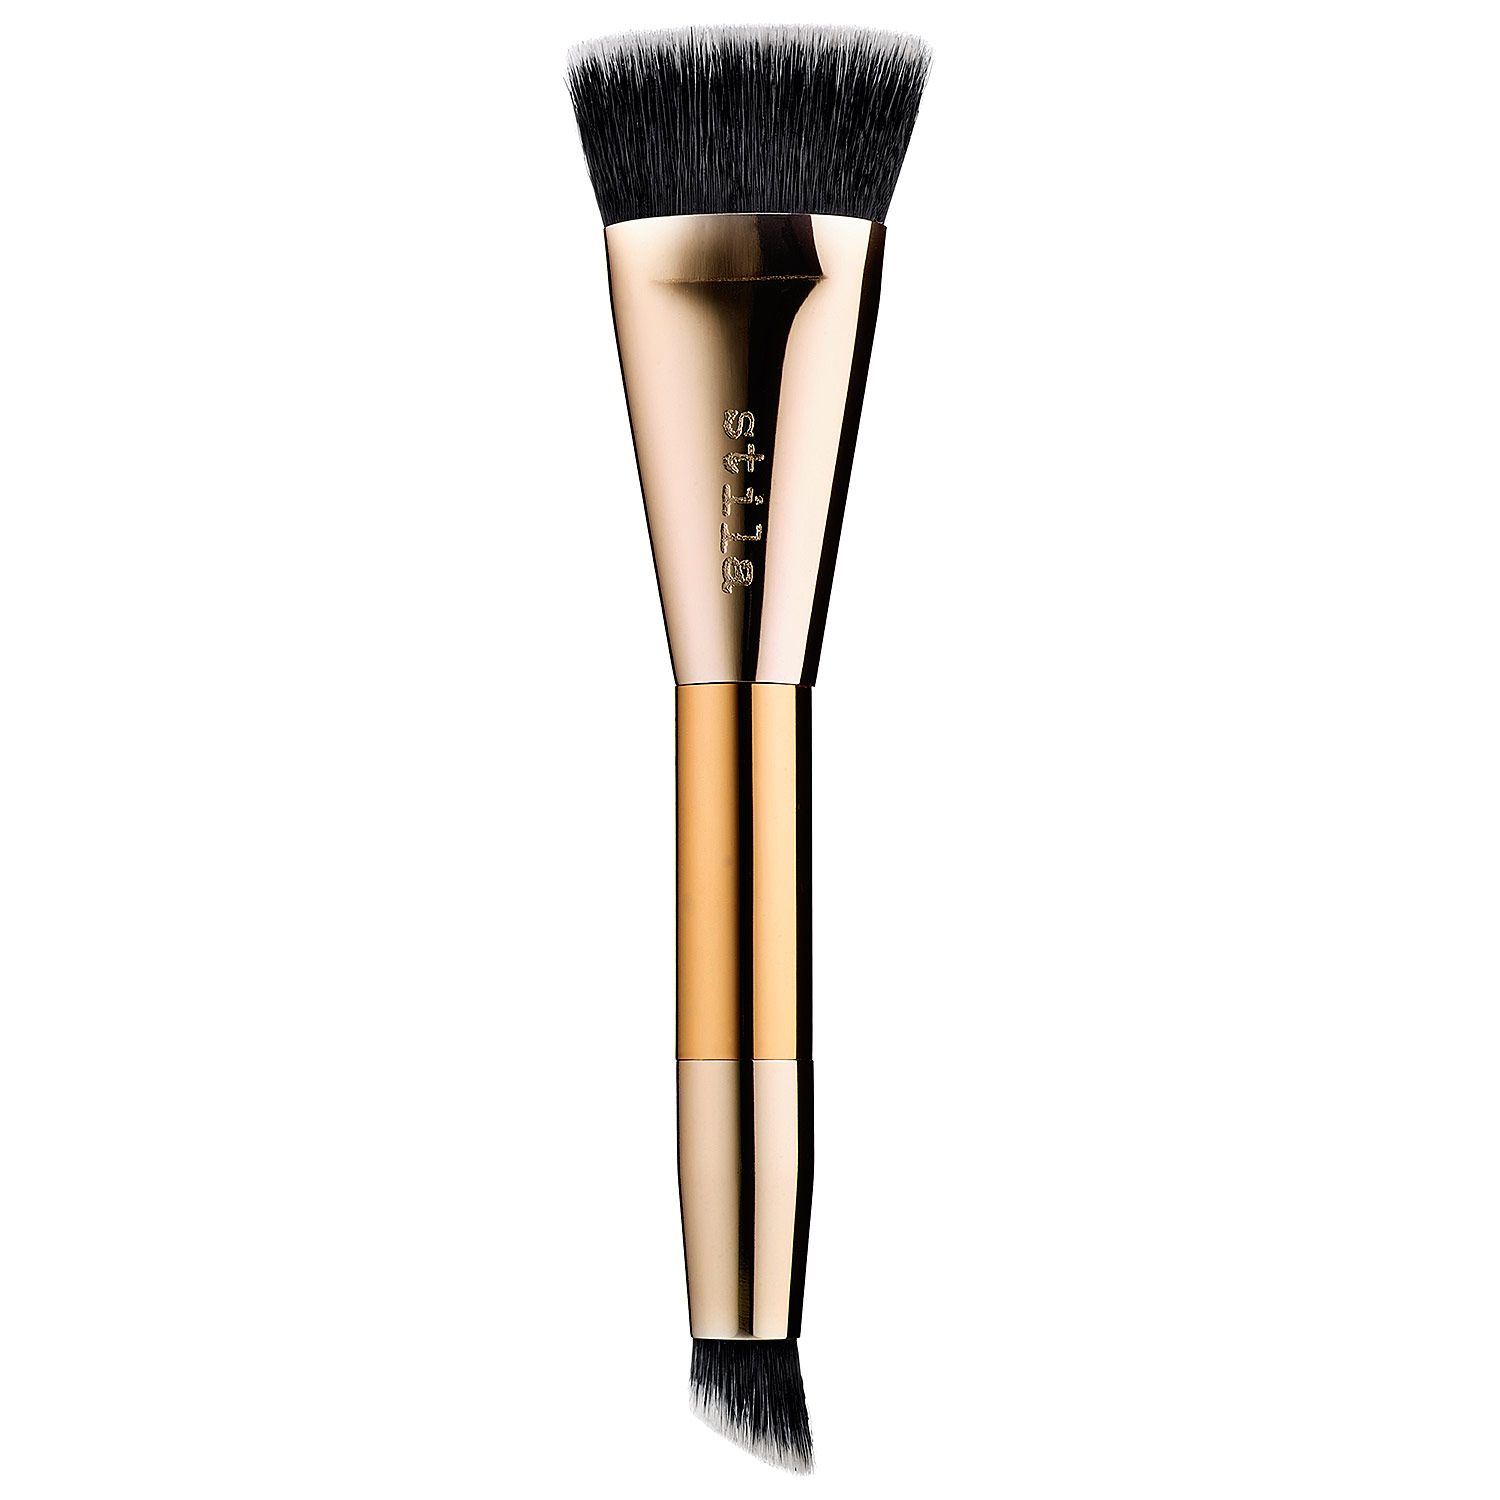 What It Isa Synthetic Hair Brush With A Flathead For Contouring And